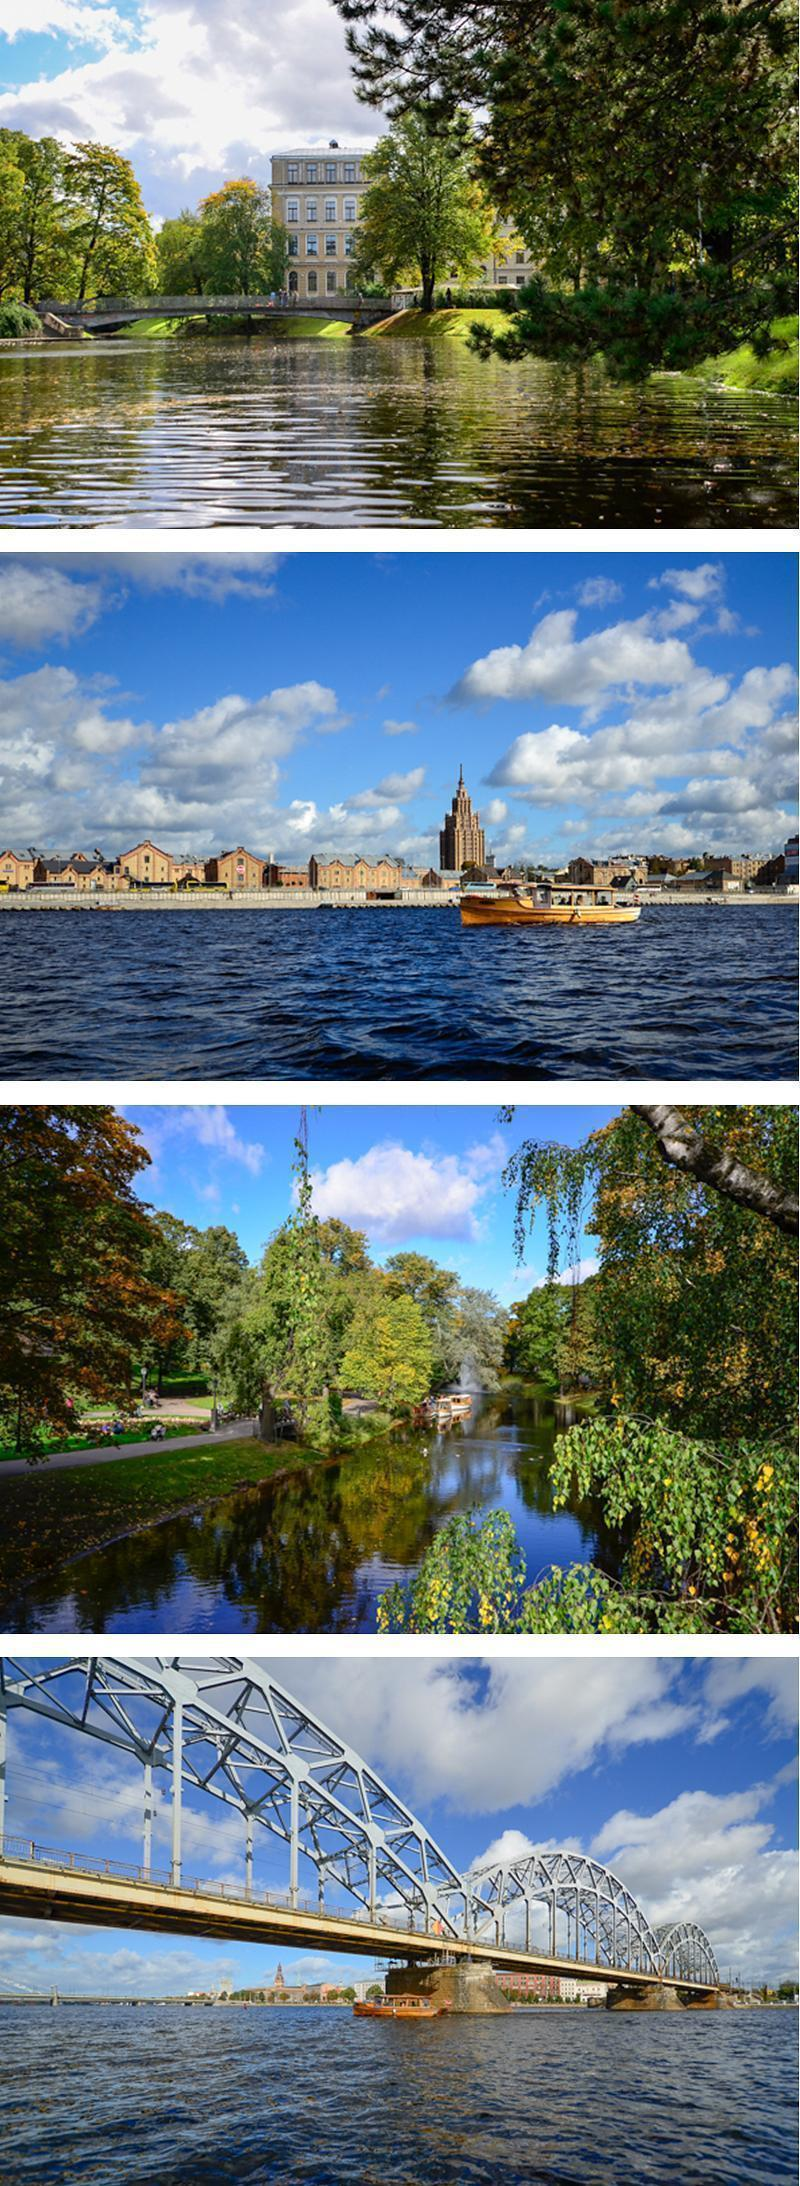 A boat tour allows you to explore both Riga's canal and the river.